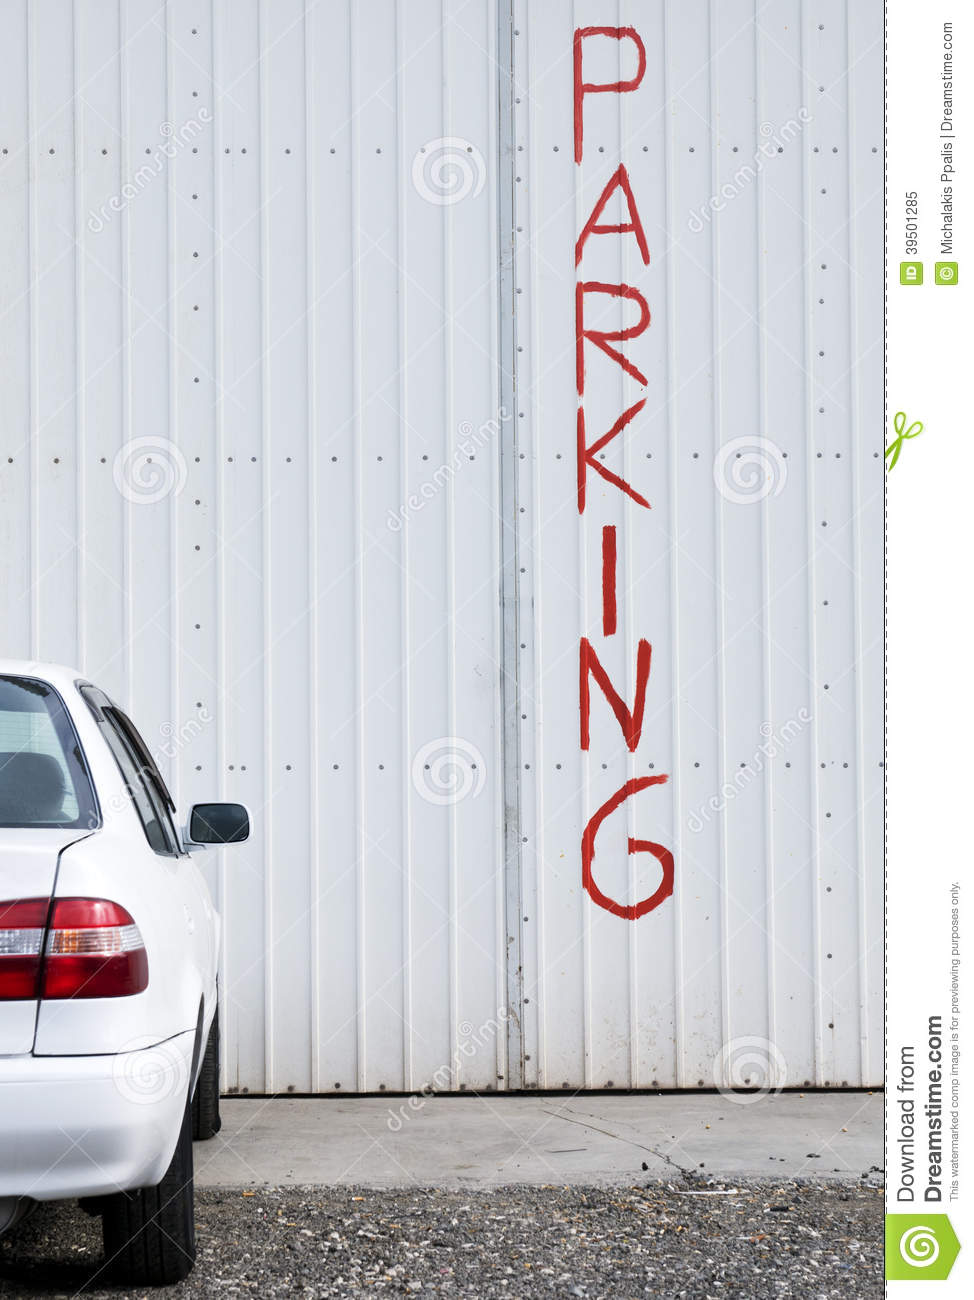 Car Parking place